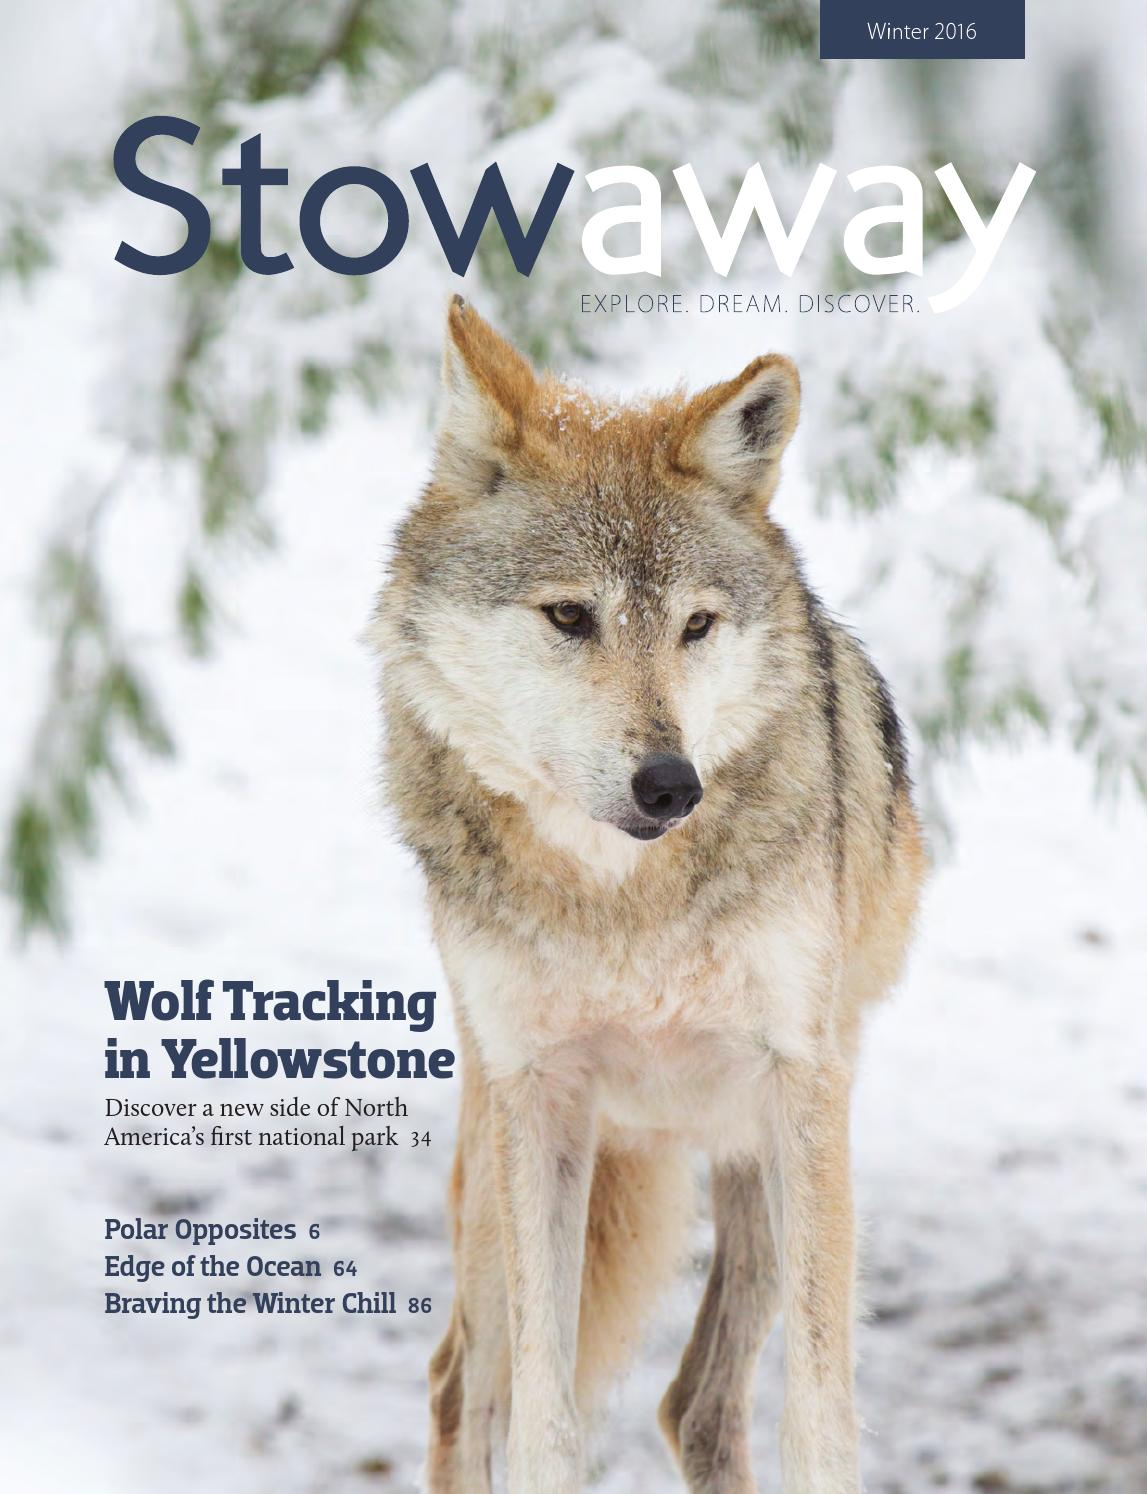 Stowaway winter 2016 by brigham young university editing students stowaway winter 2016 by brigham young university editing students issuu publicscrutiny Images